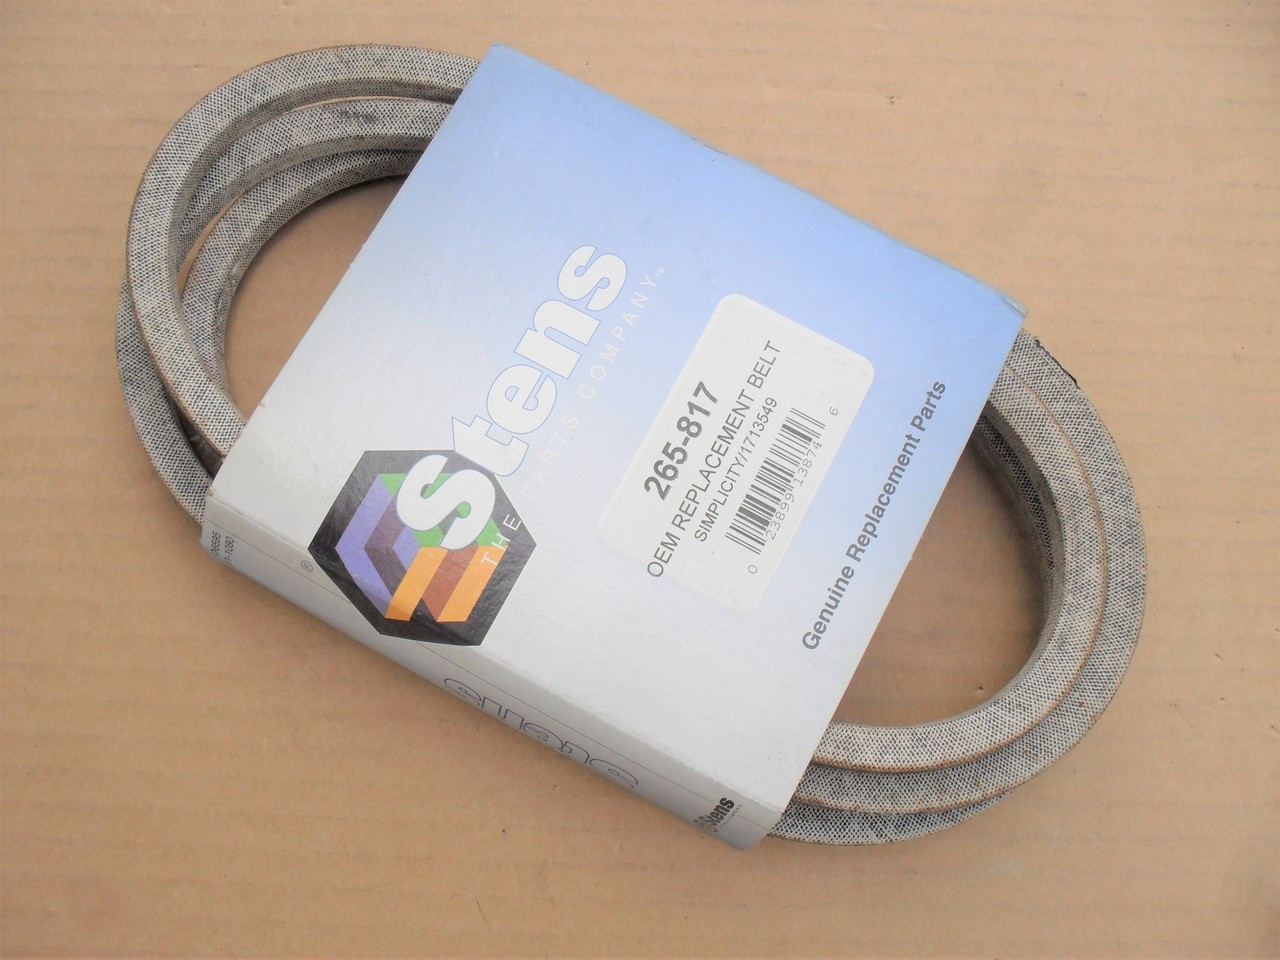 SIMPLICITY MANUFACTURING 156231 Replacement Belt